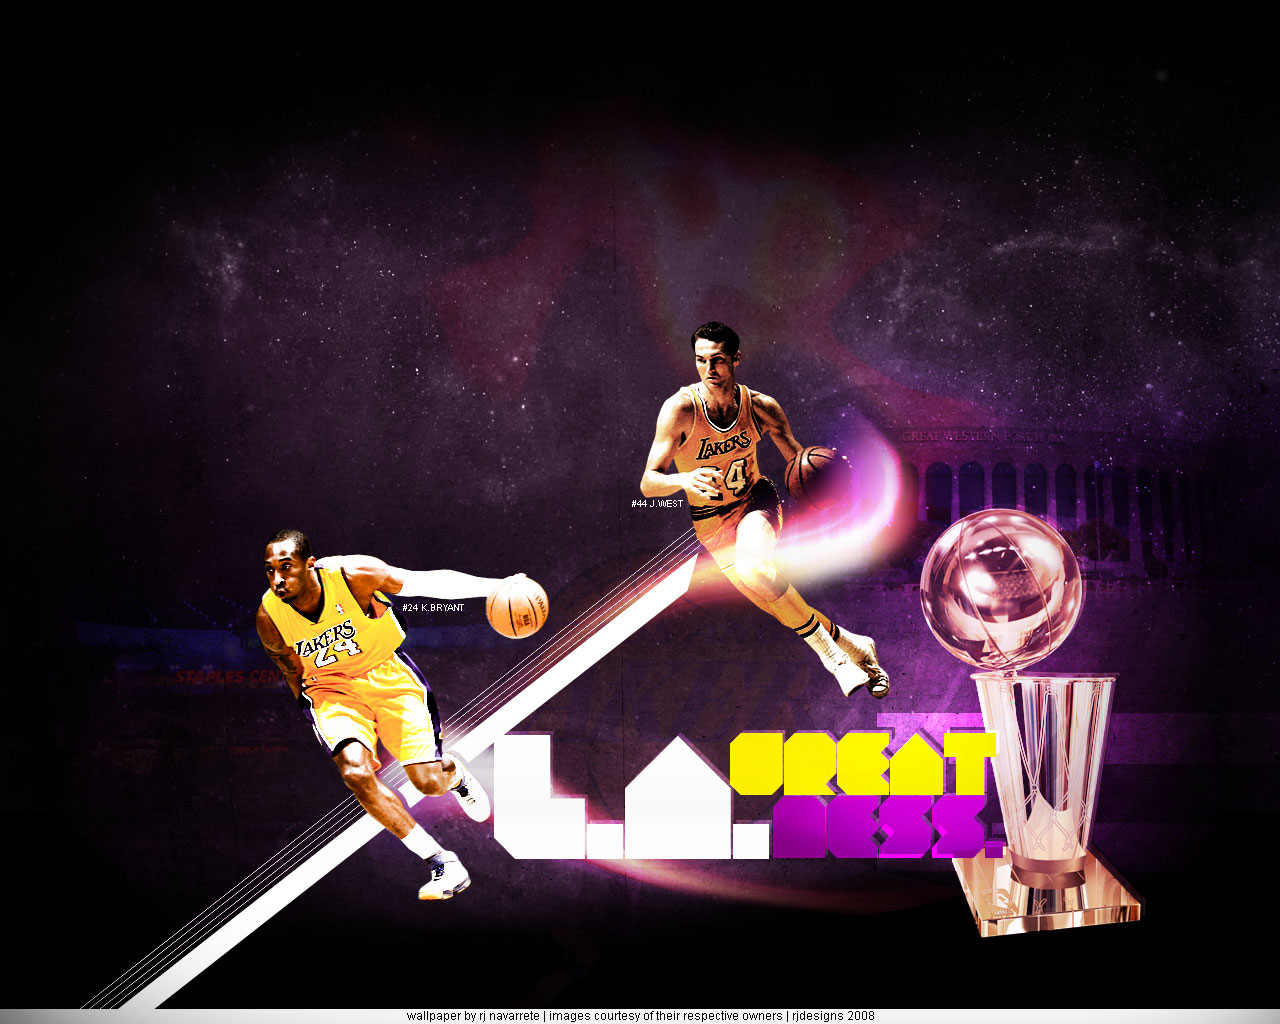 one retired and one still active - wallpaper of Jerry West and Kobe